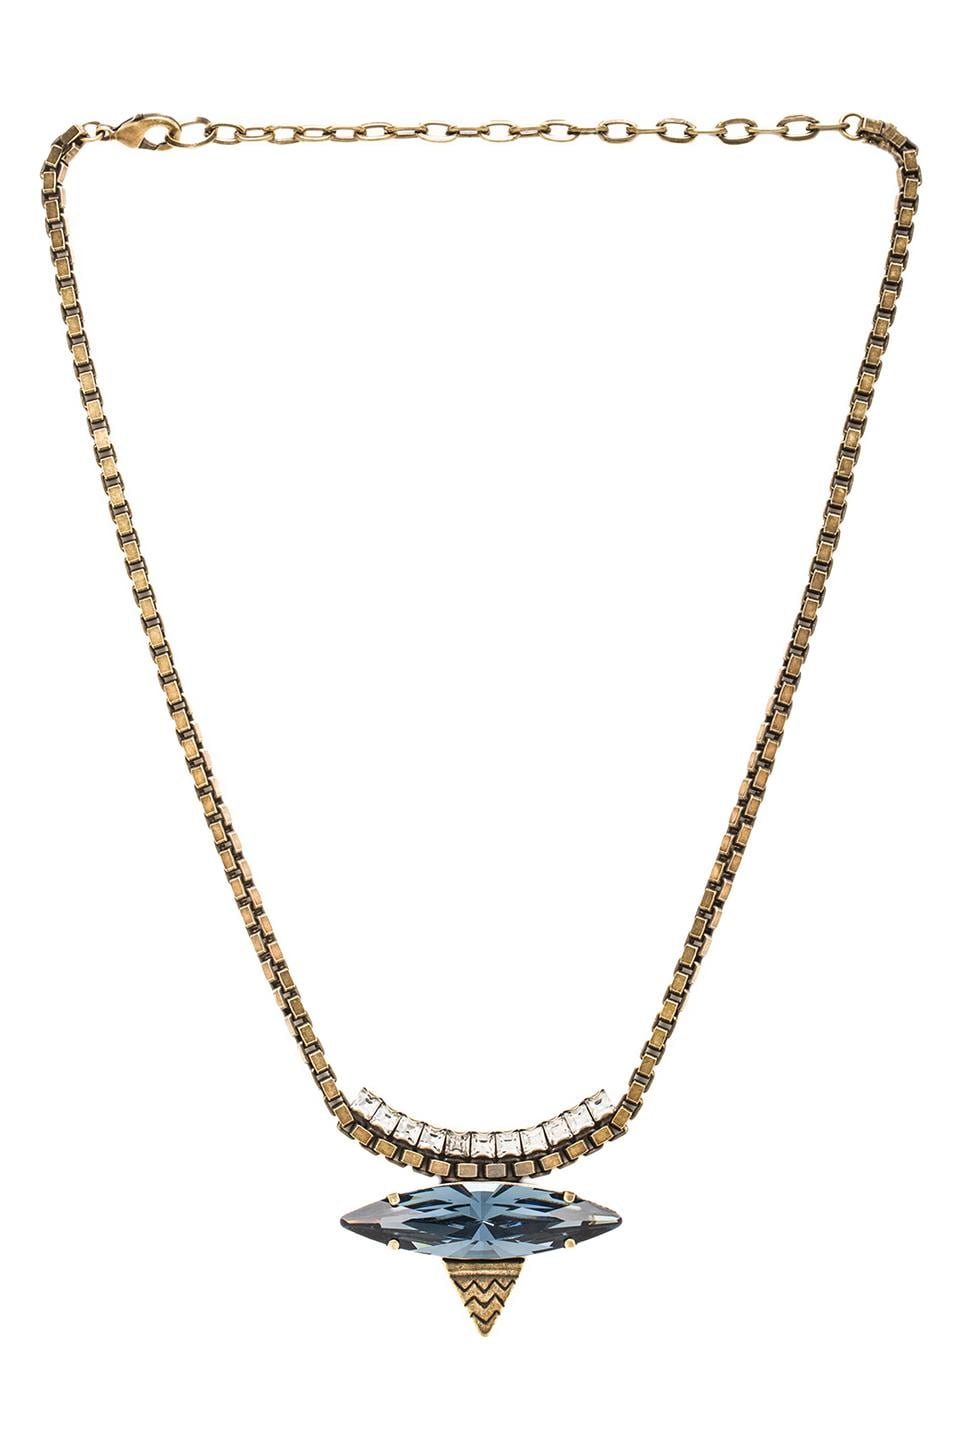 Lionette by Noa Sade Harlem Necklace in Midnight